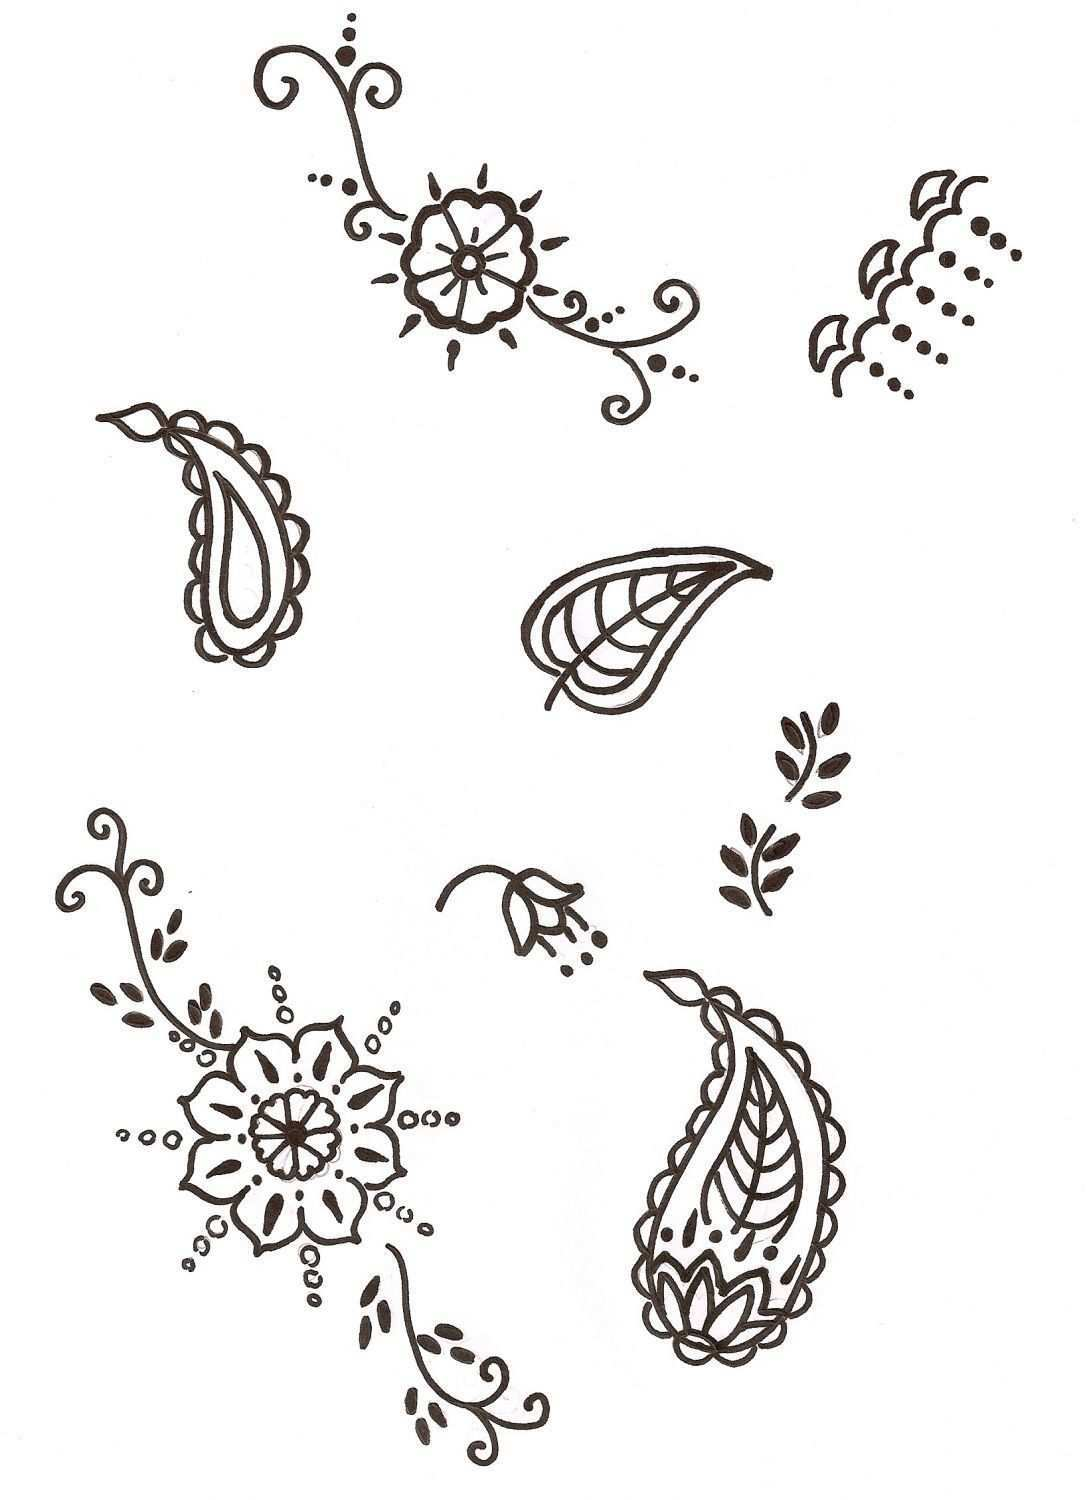 Henna Patterns These Are A Few Very Simple Henna Patterns Just Very Basic Ide Henna Patterns These Are A Fe Modeles De Henne Tatouage Au Henne Henne